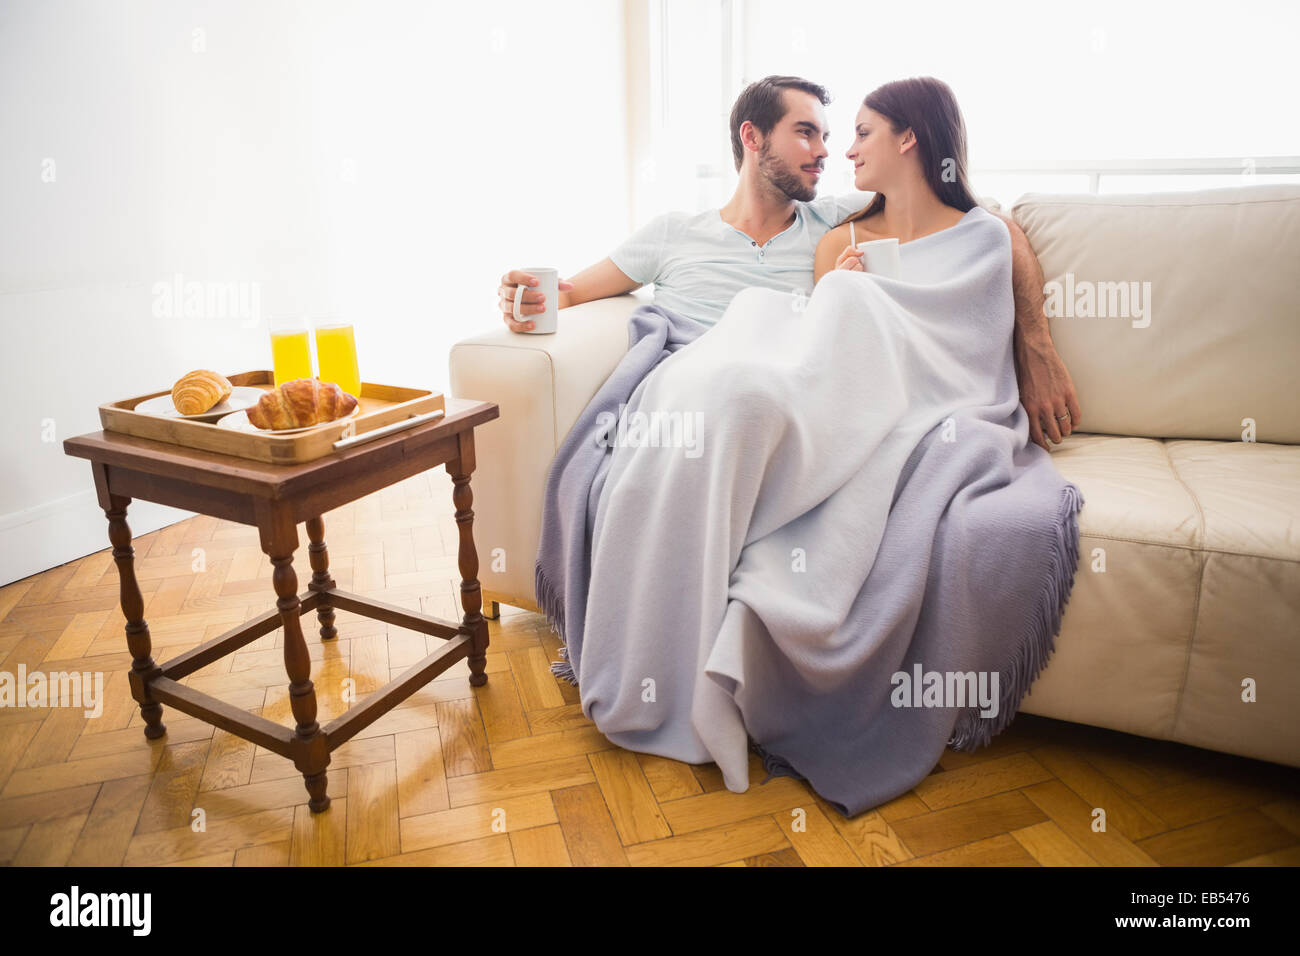 Cute couple relaxing on couch under blanket stock photo for Sofa kuscheln